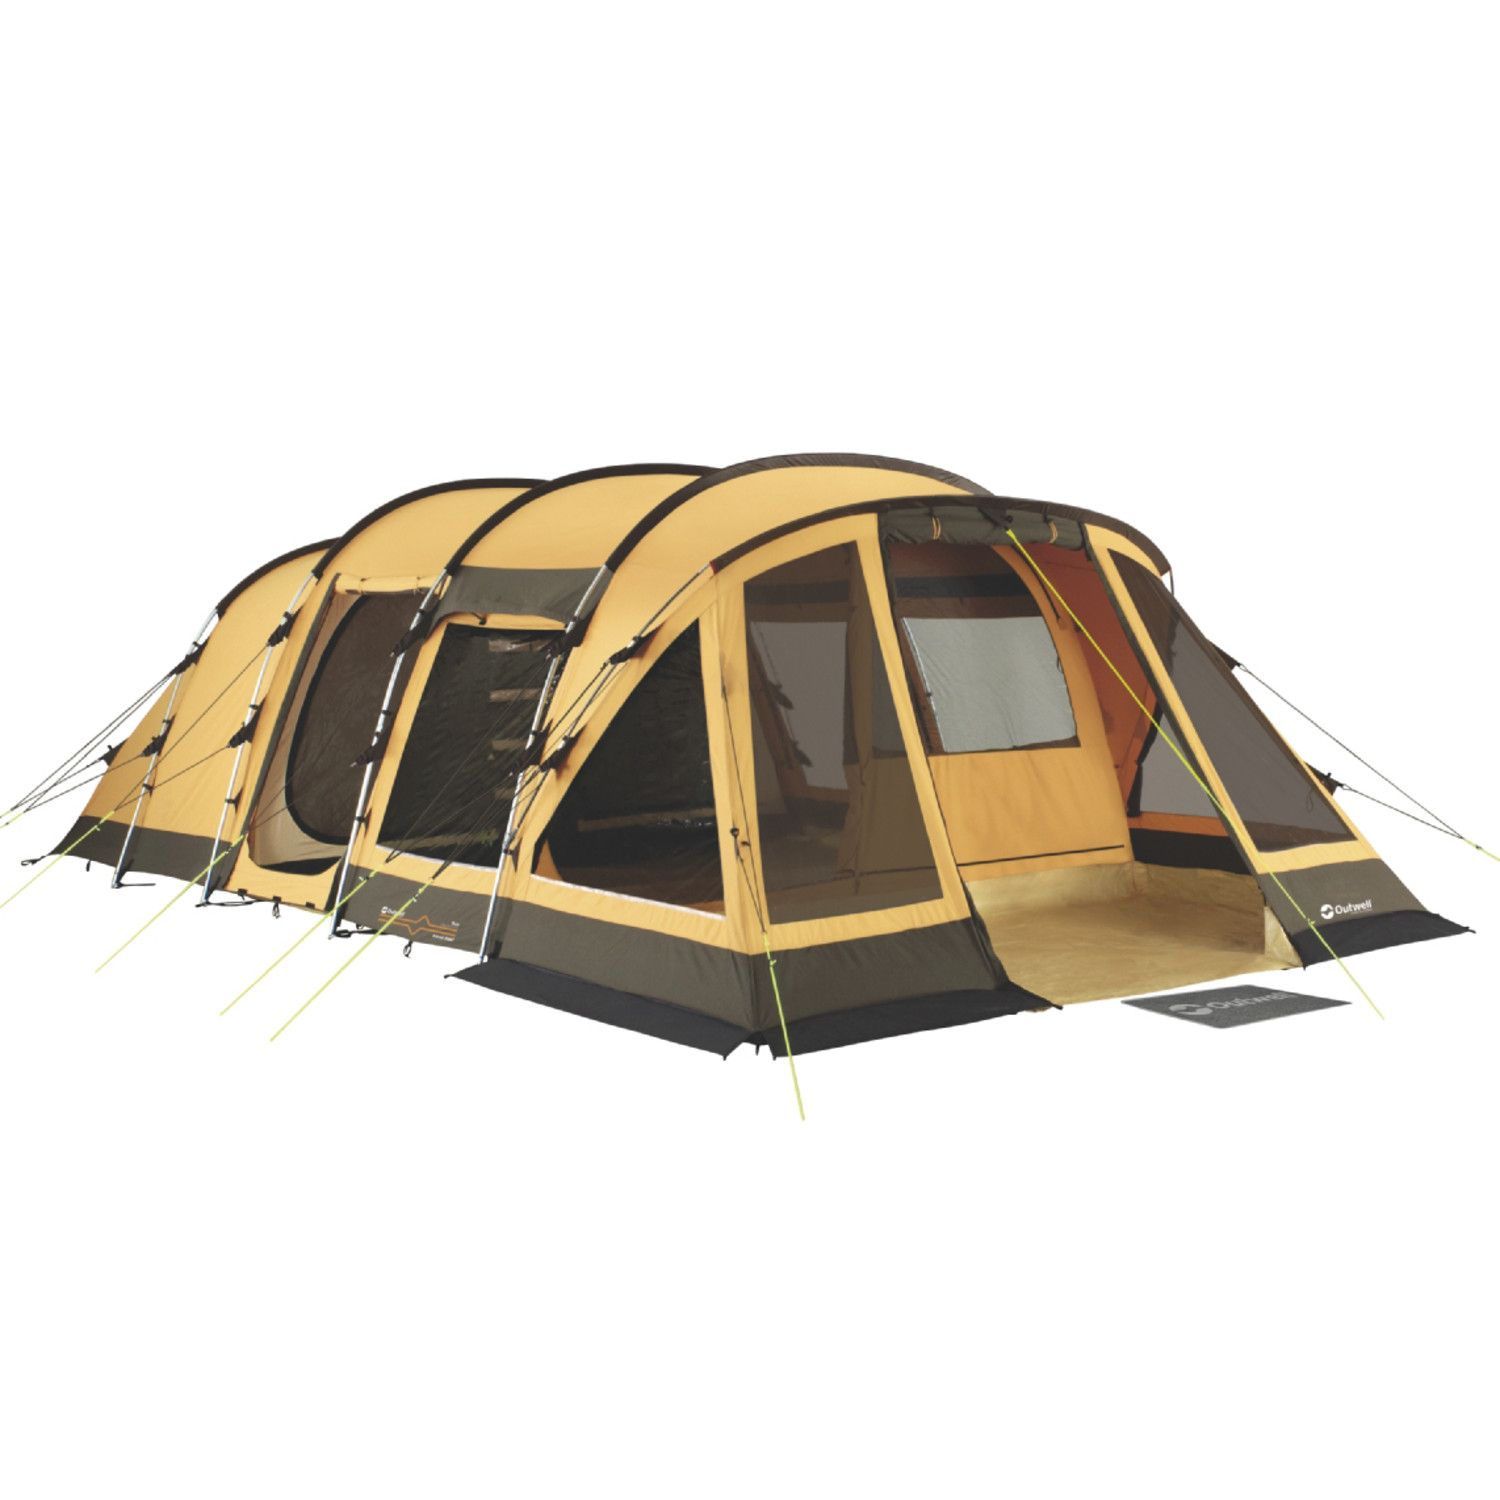 Outwell Kauai Reef Tent Outwell Tents Polycotton Tents Caseys